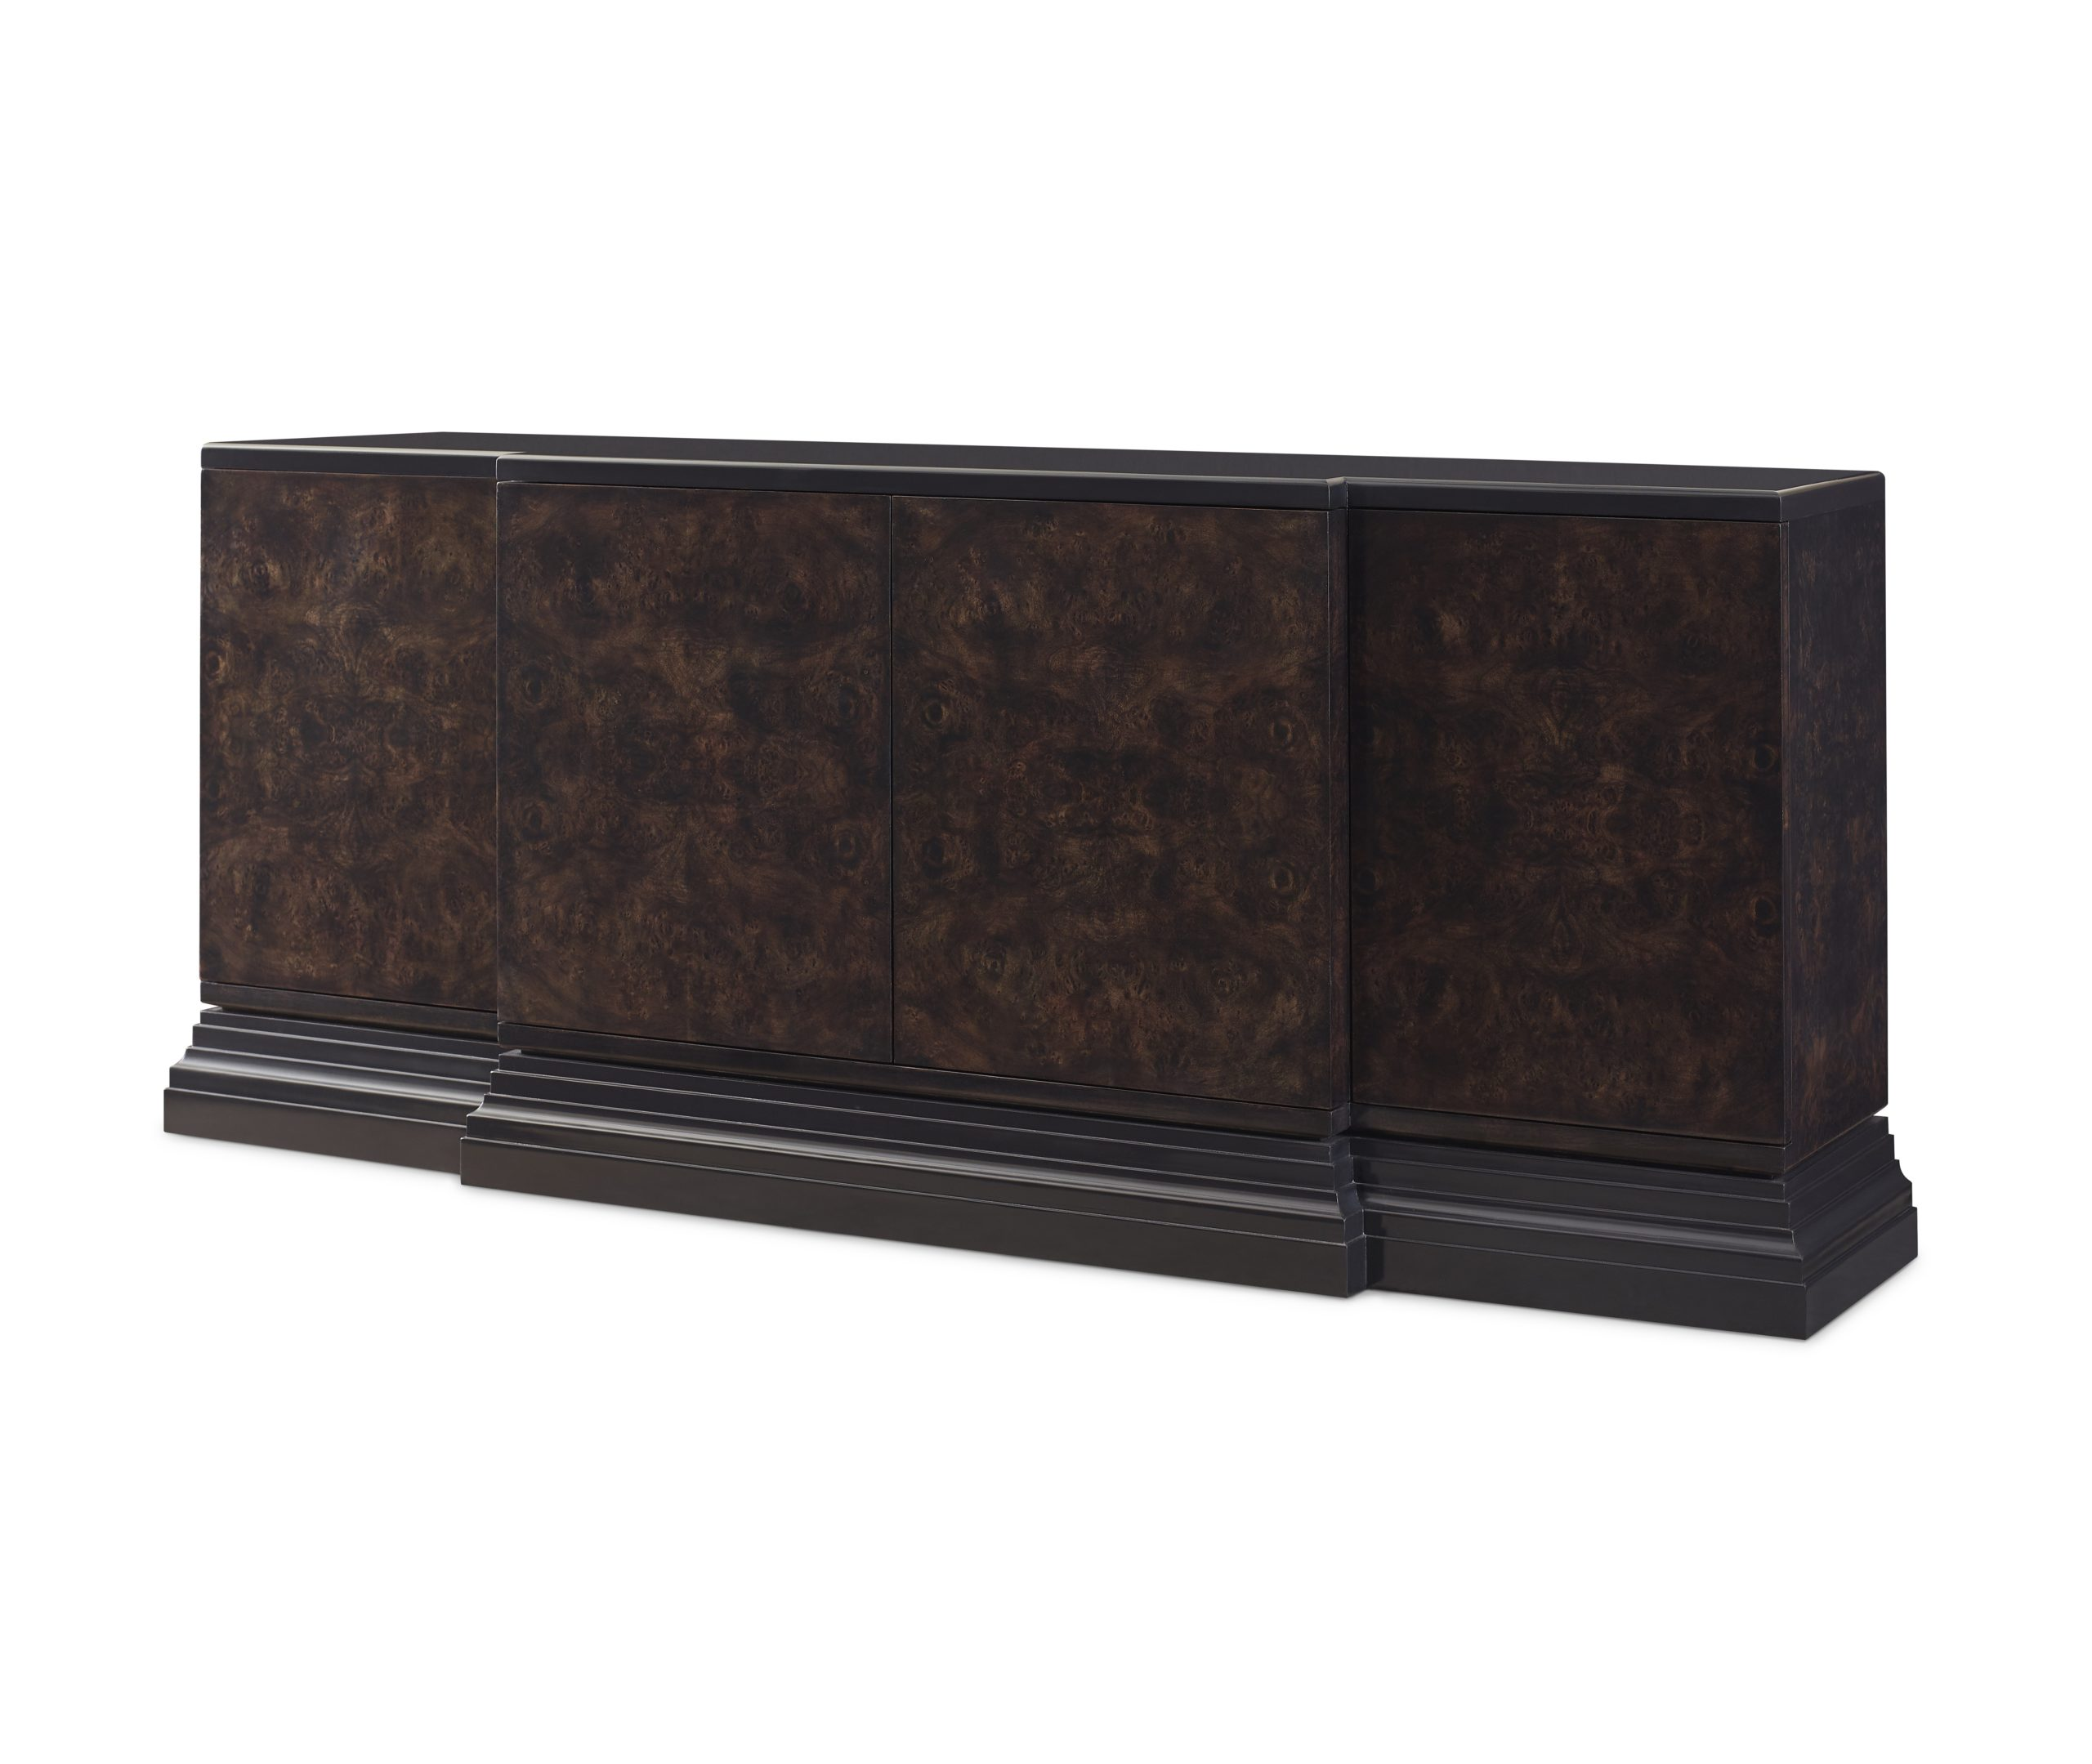 Baker_products_WNWN_maximus_credenza_BAA3030_FRONT_3QRT-scaled-1